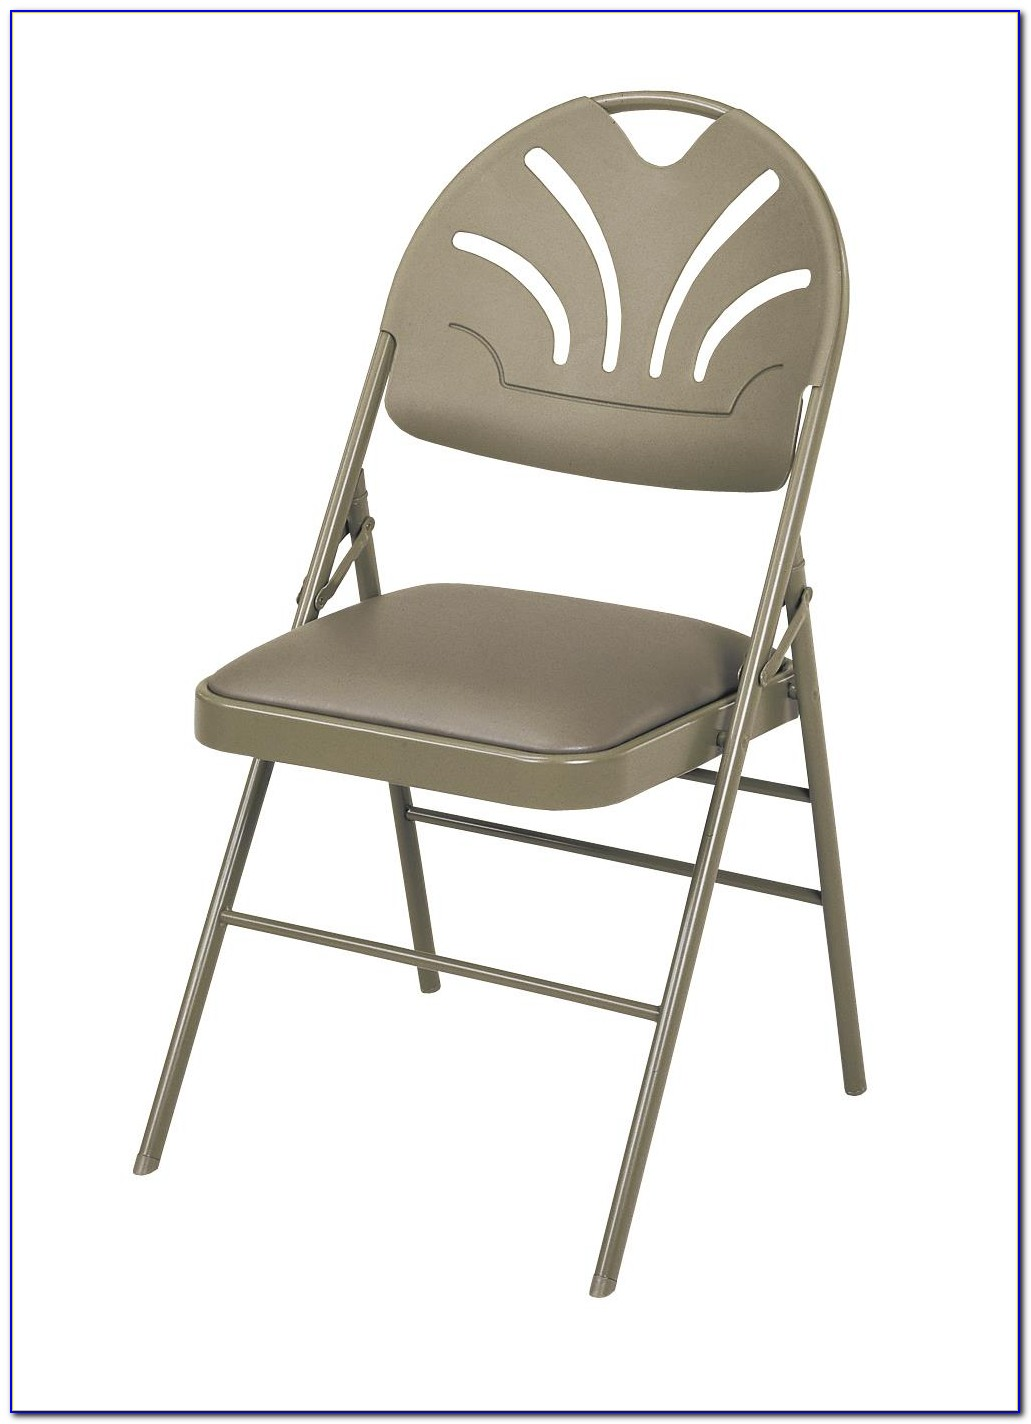 Cosco Folding Chairs Wood